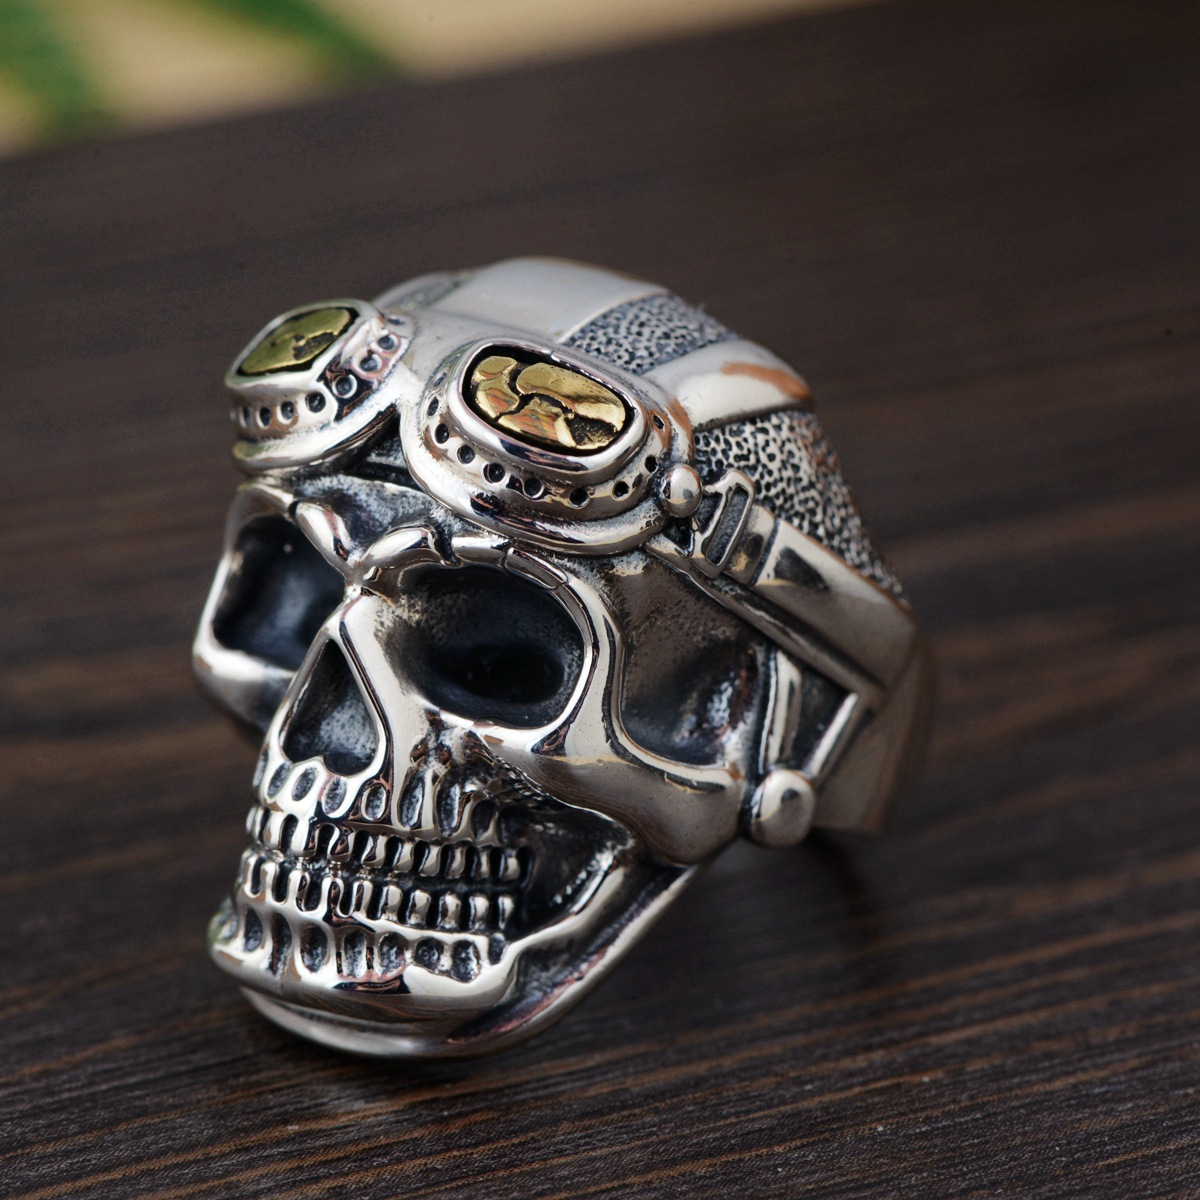 Personalized Biker Rings For Men Genuine 925 Sterling Silver Skull Head With Pilot Glass Mens Rings Resizable Vintage Punk